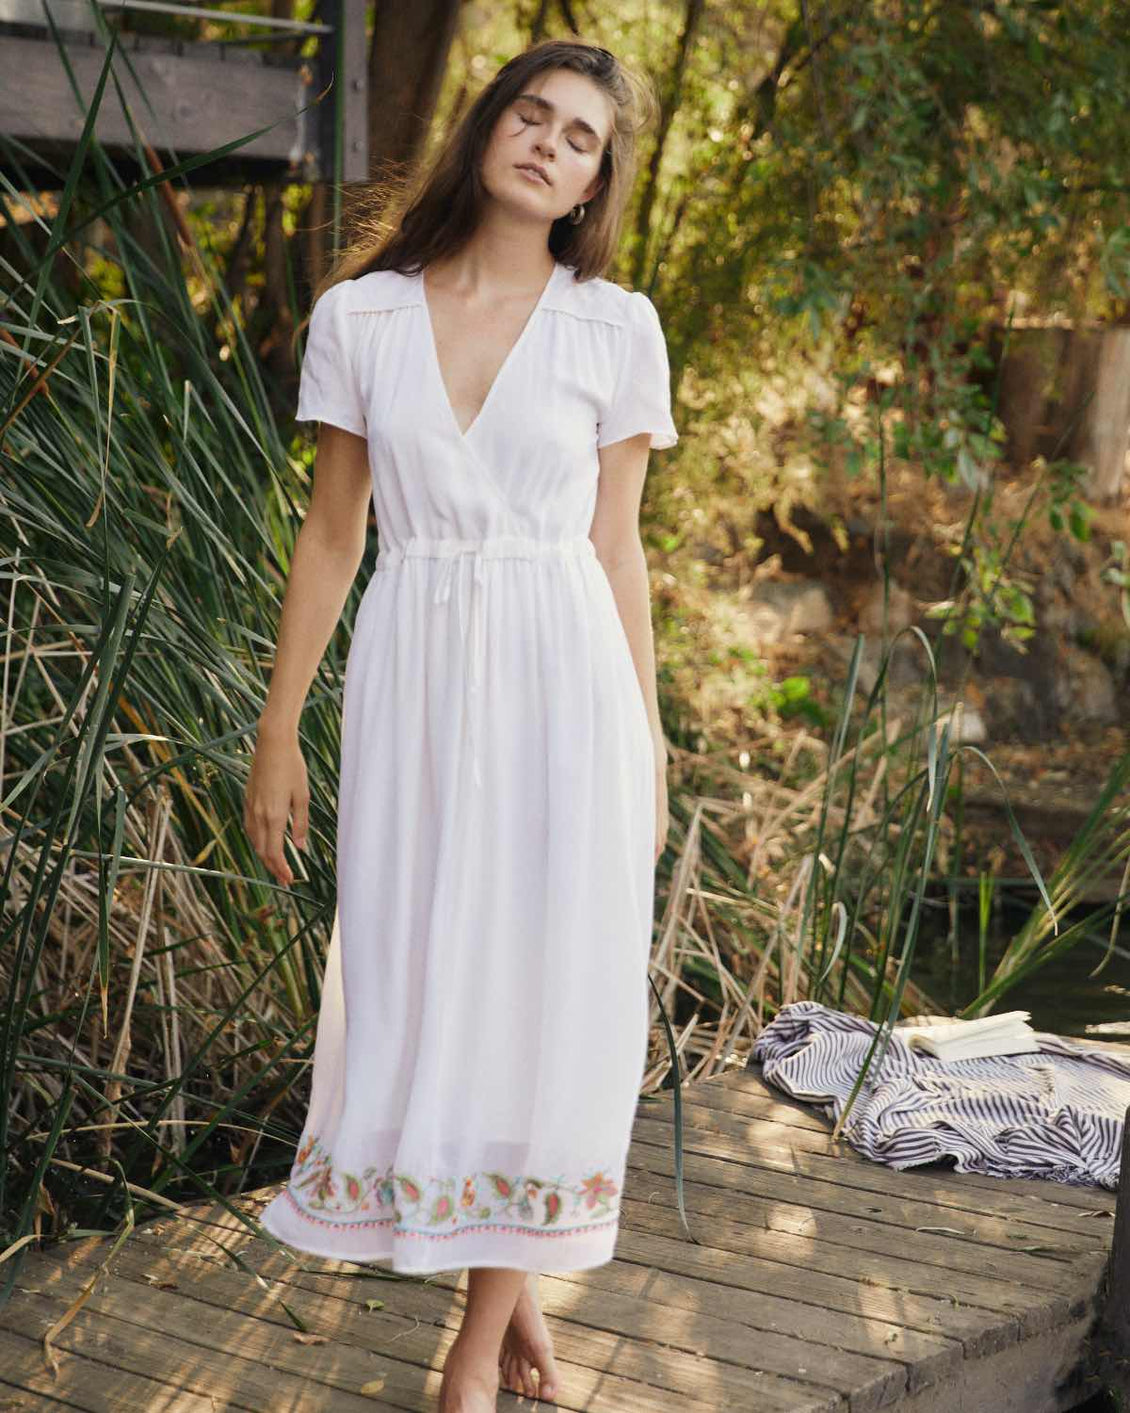 The Dawn Dress | Lily Embroider (3-of-a-Kind)